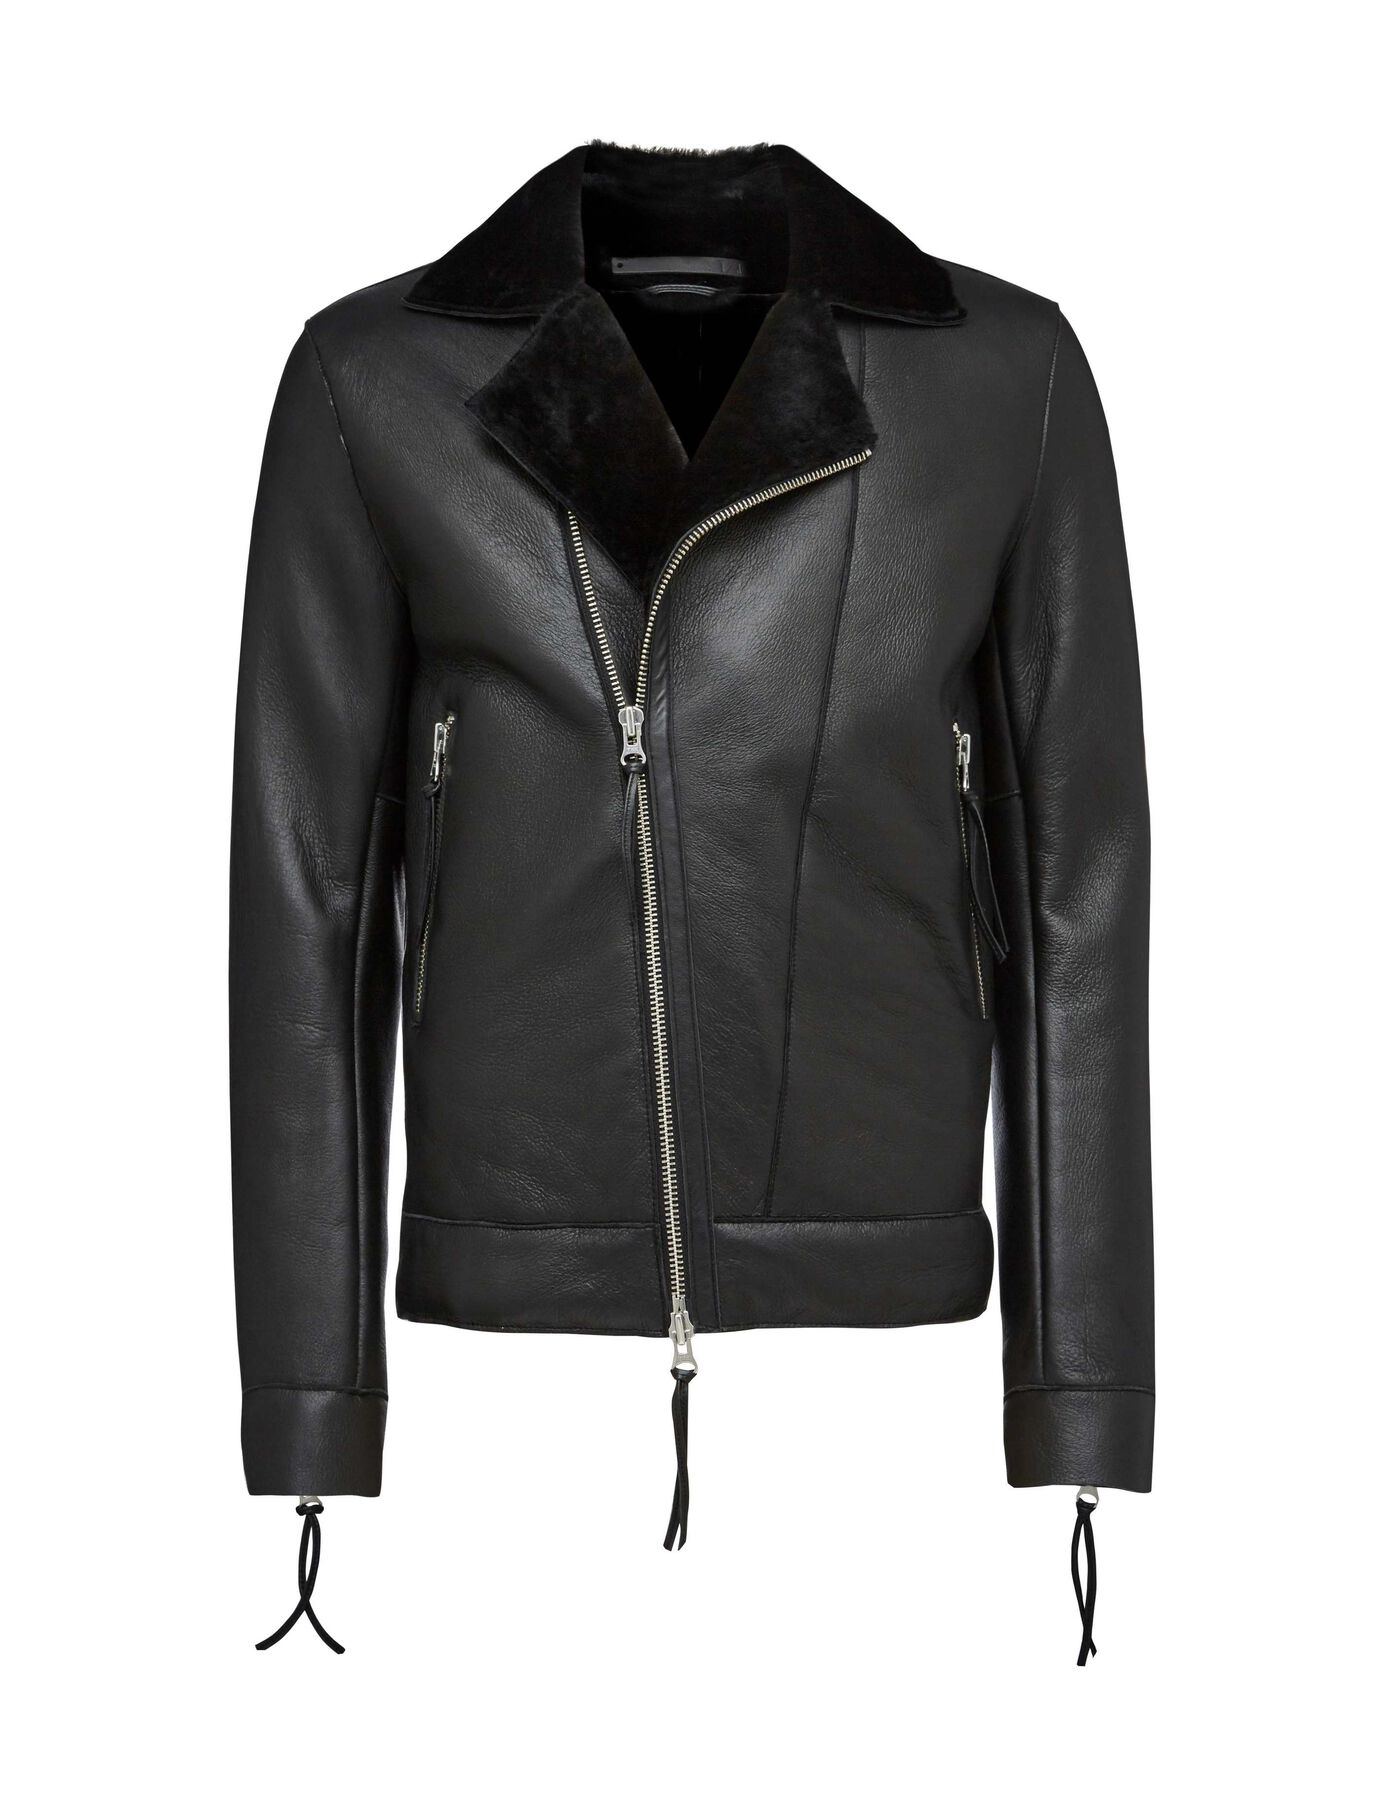 DUEL JACKET in Black from Tiger of Sweden